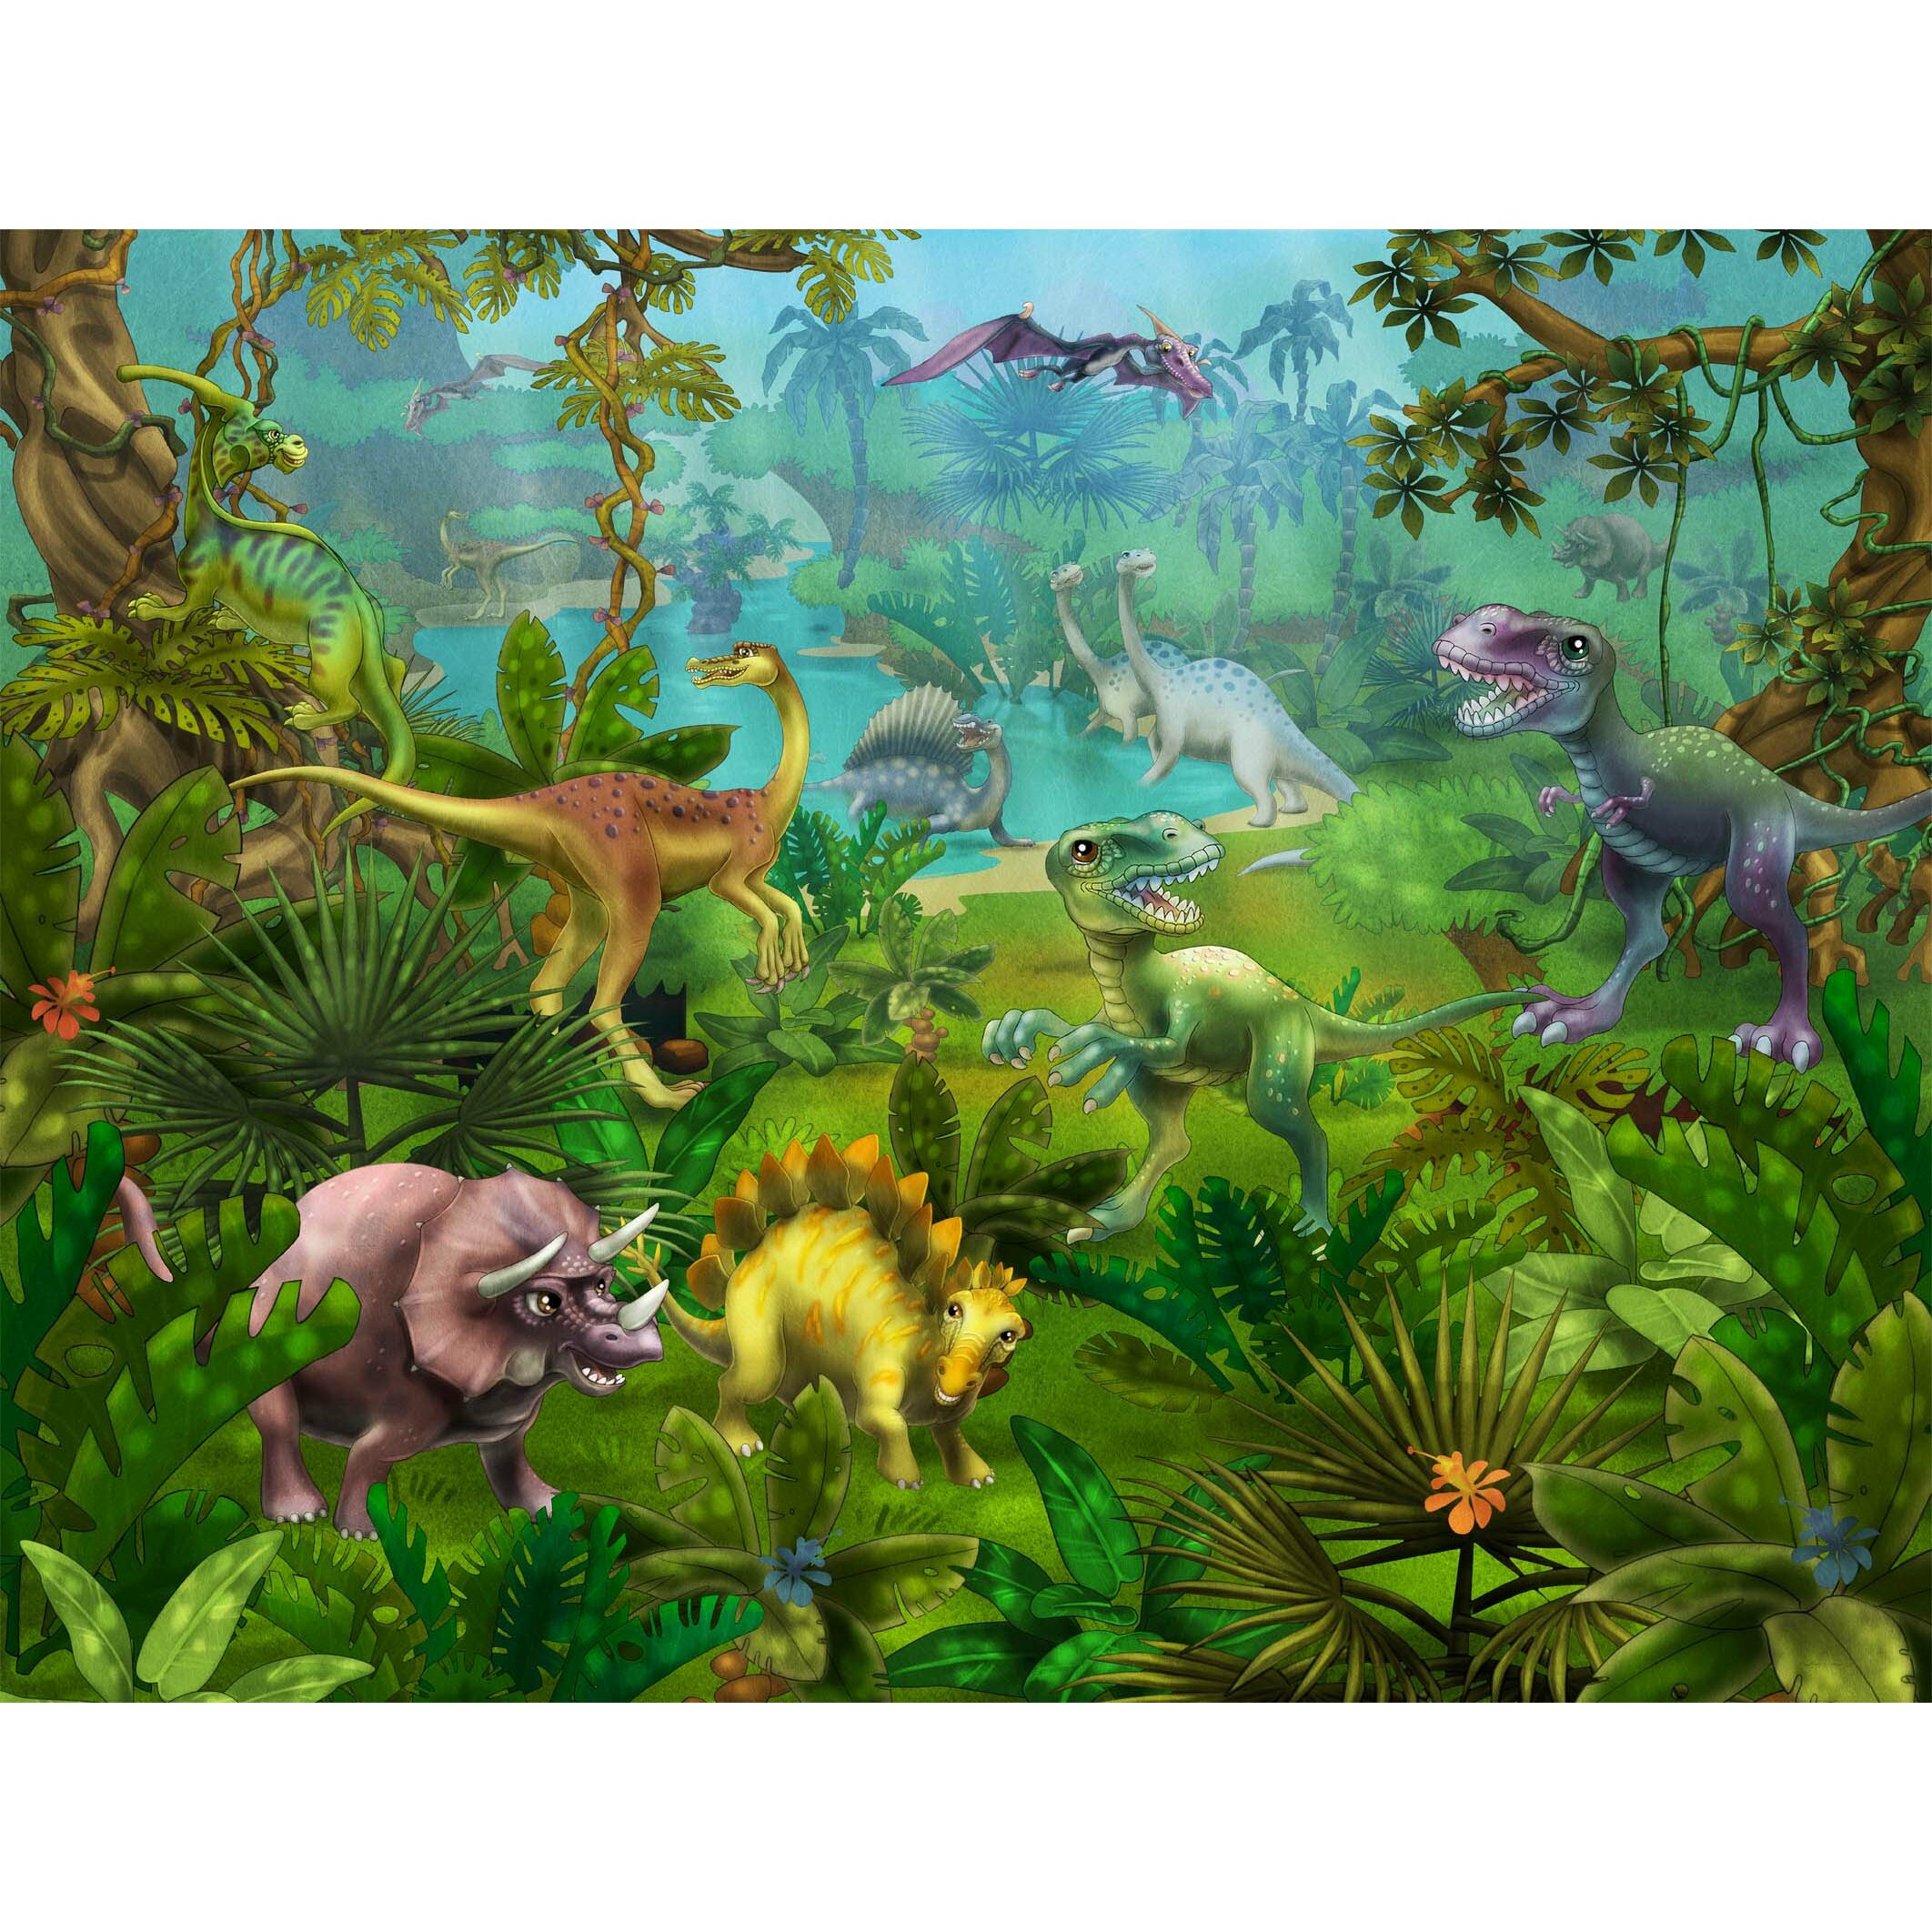 dinosaur utopia poster wall mural wayfair photo wall mural wallpaper picture poster no 86 tuscany